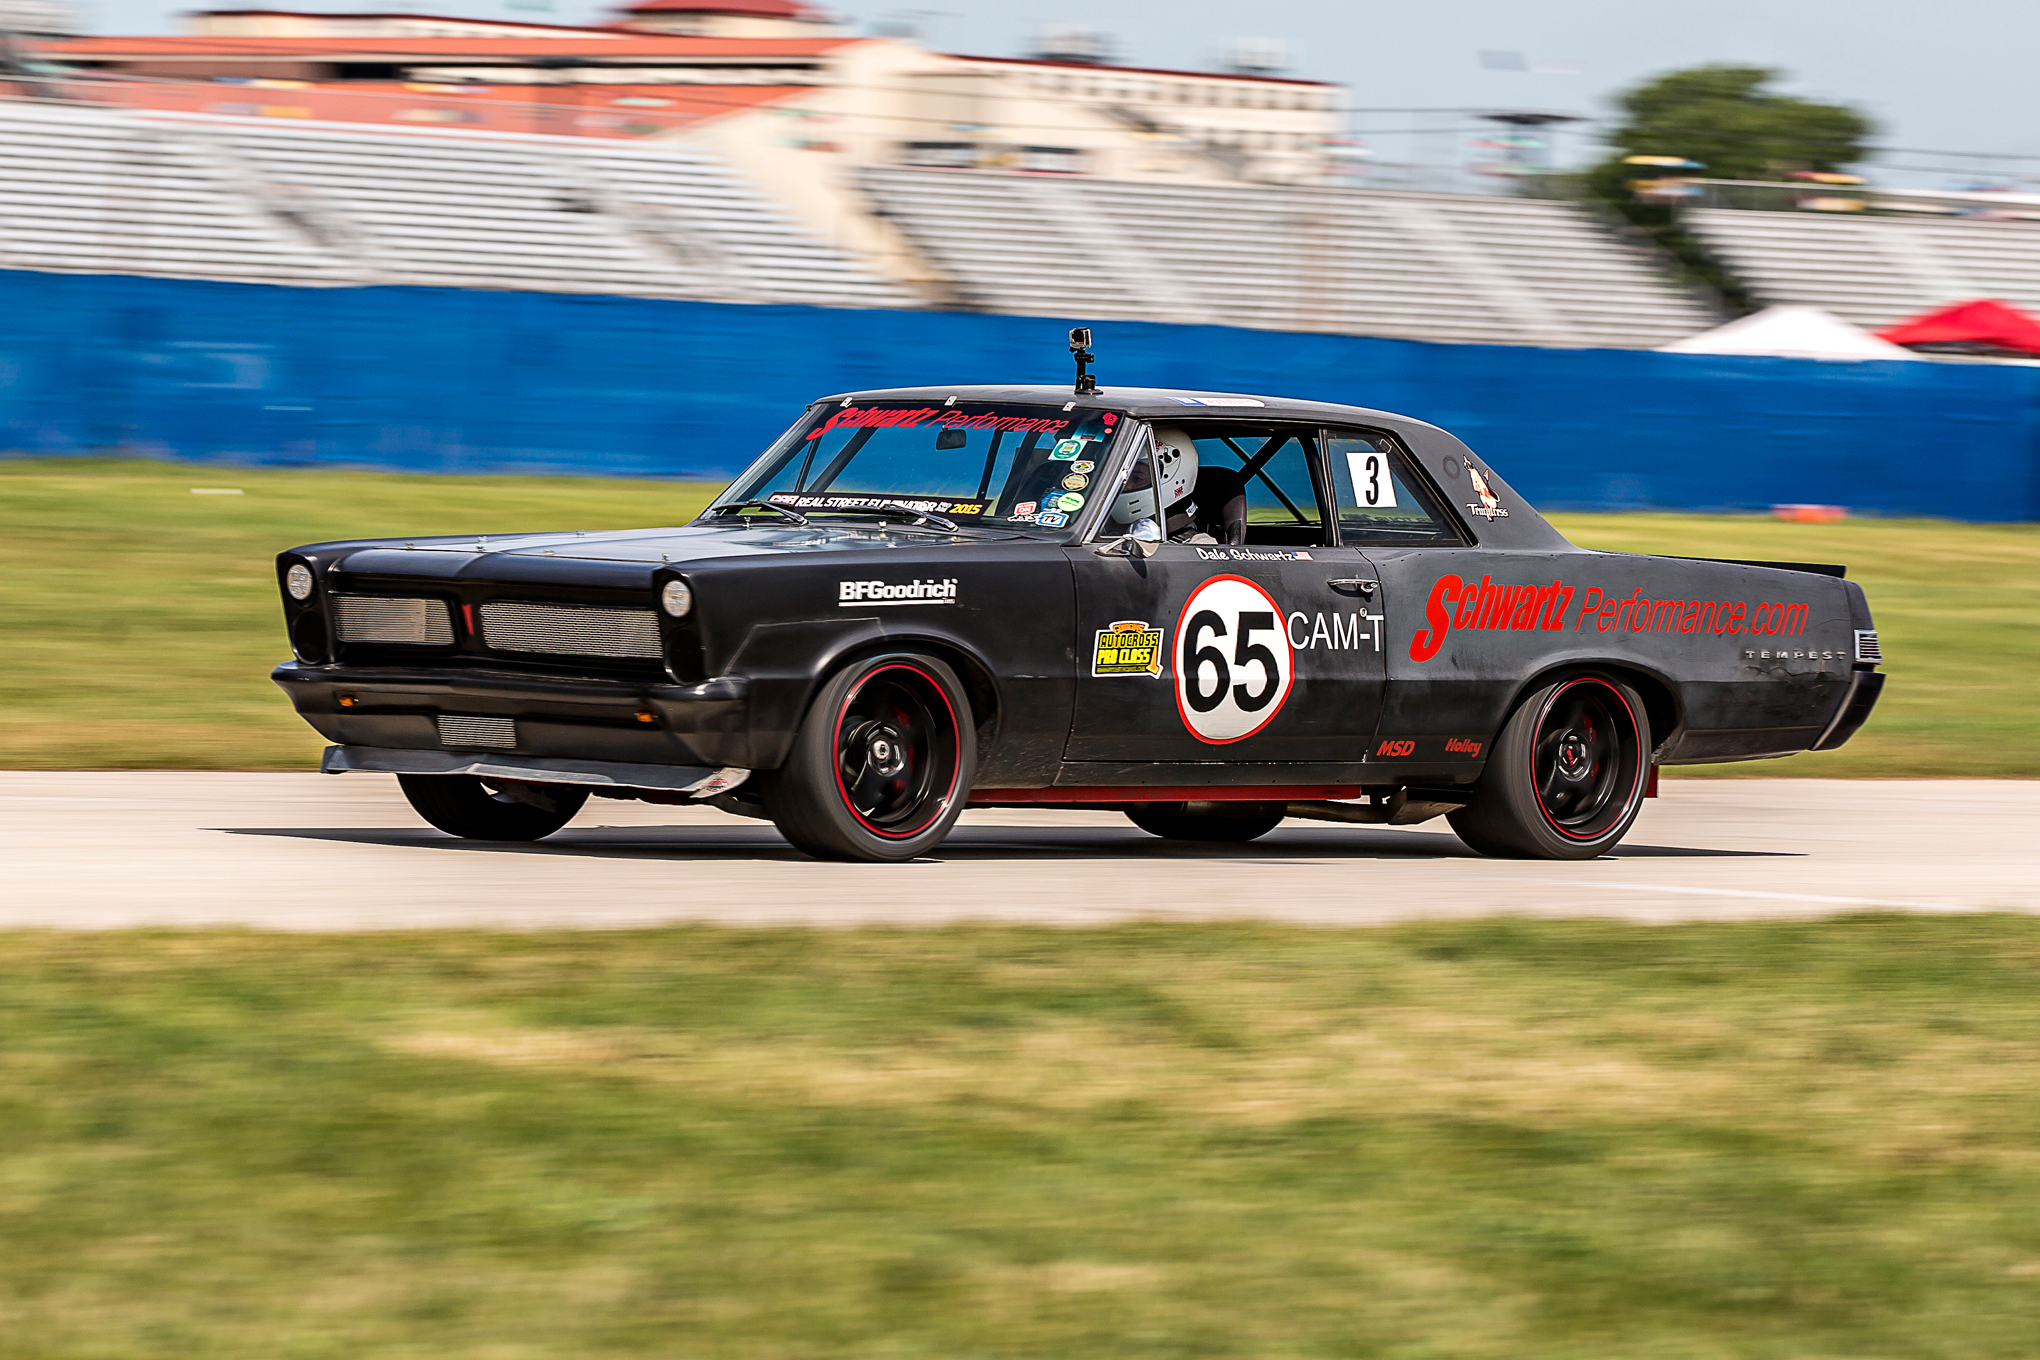 The 1965 Pontiac Tempest of Dale Schwartz proved its old iron still had plenty of fight in it, checking in only a few tenths behind his pop's unworldly Z06 in the autocross.